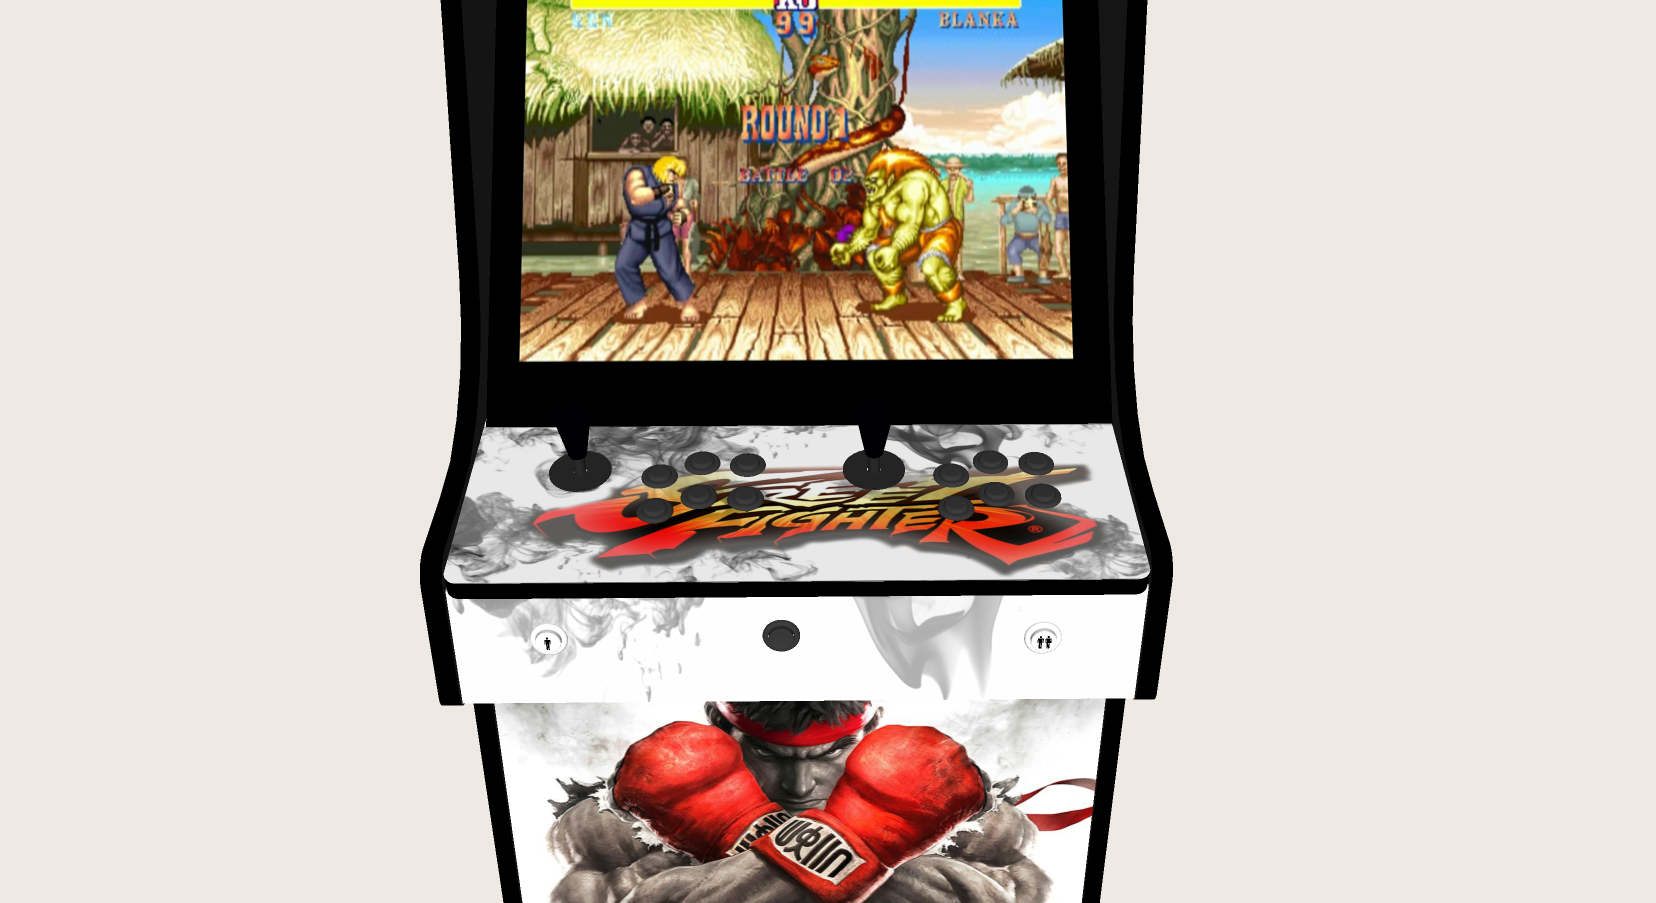 Classic Upright Arcade Machine - Street Fighter 5 Theme - Buttons